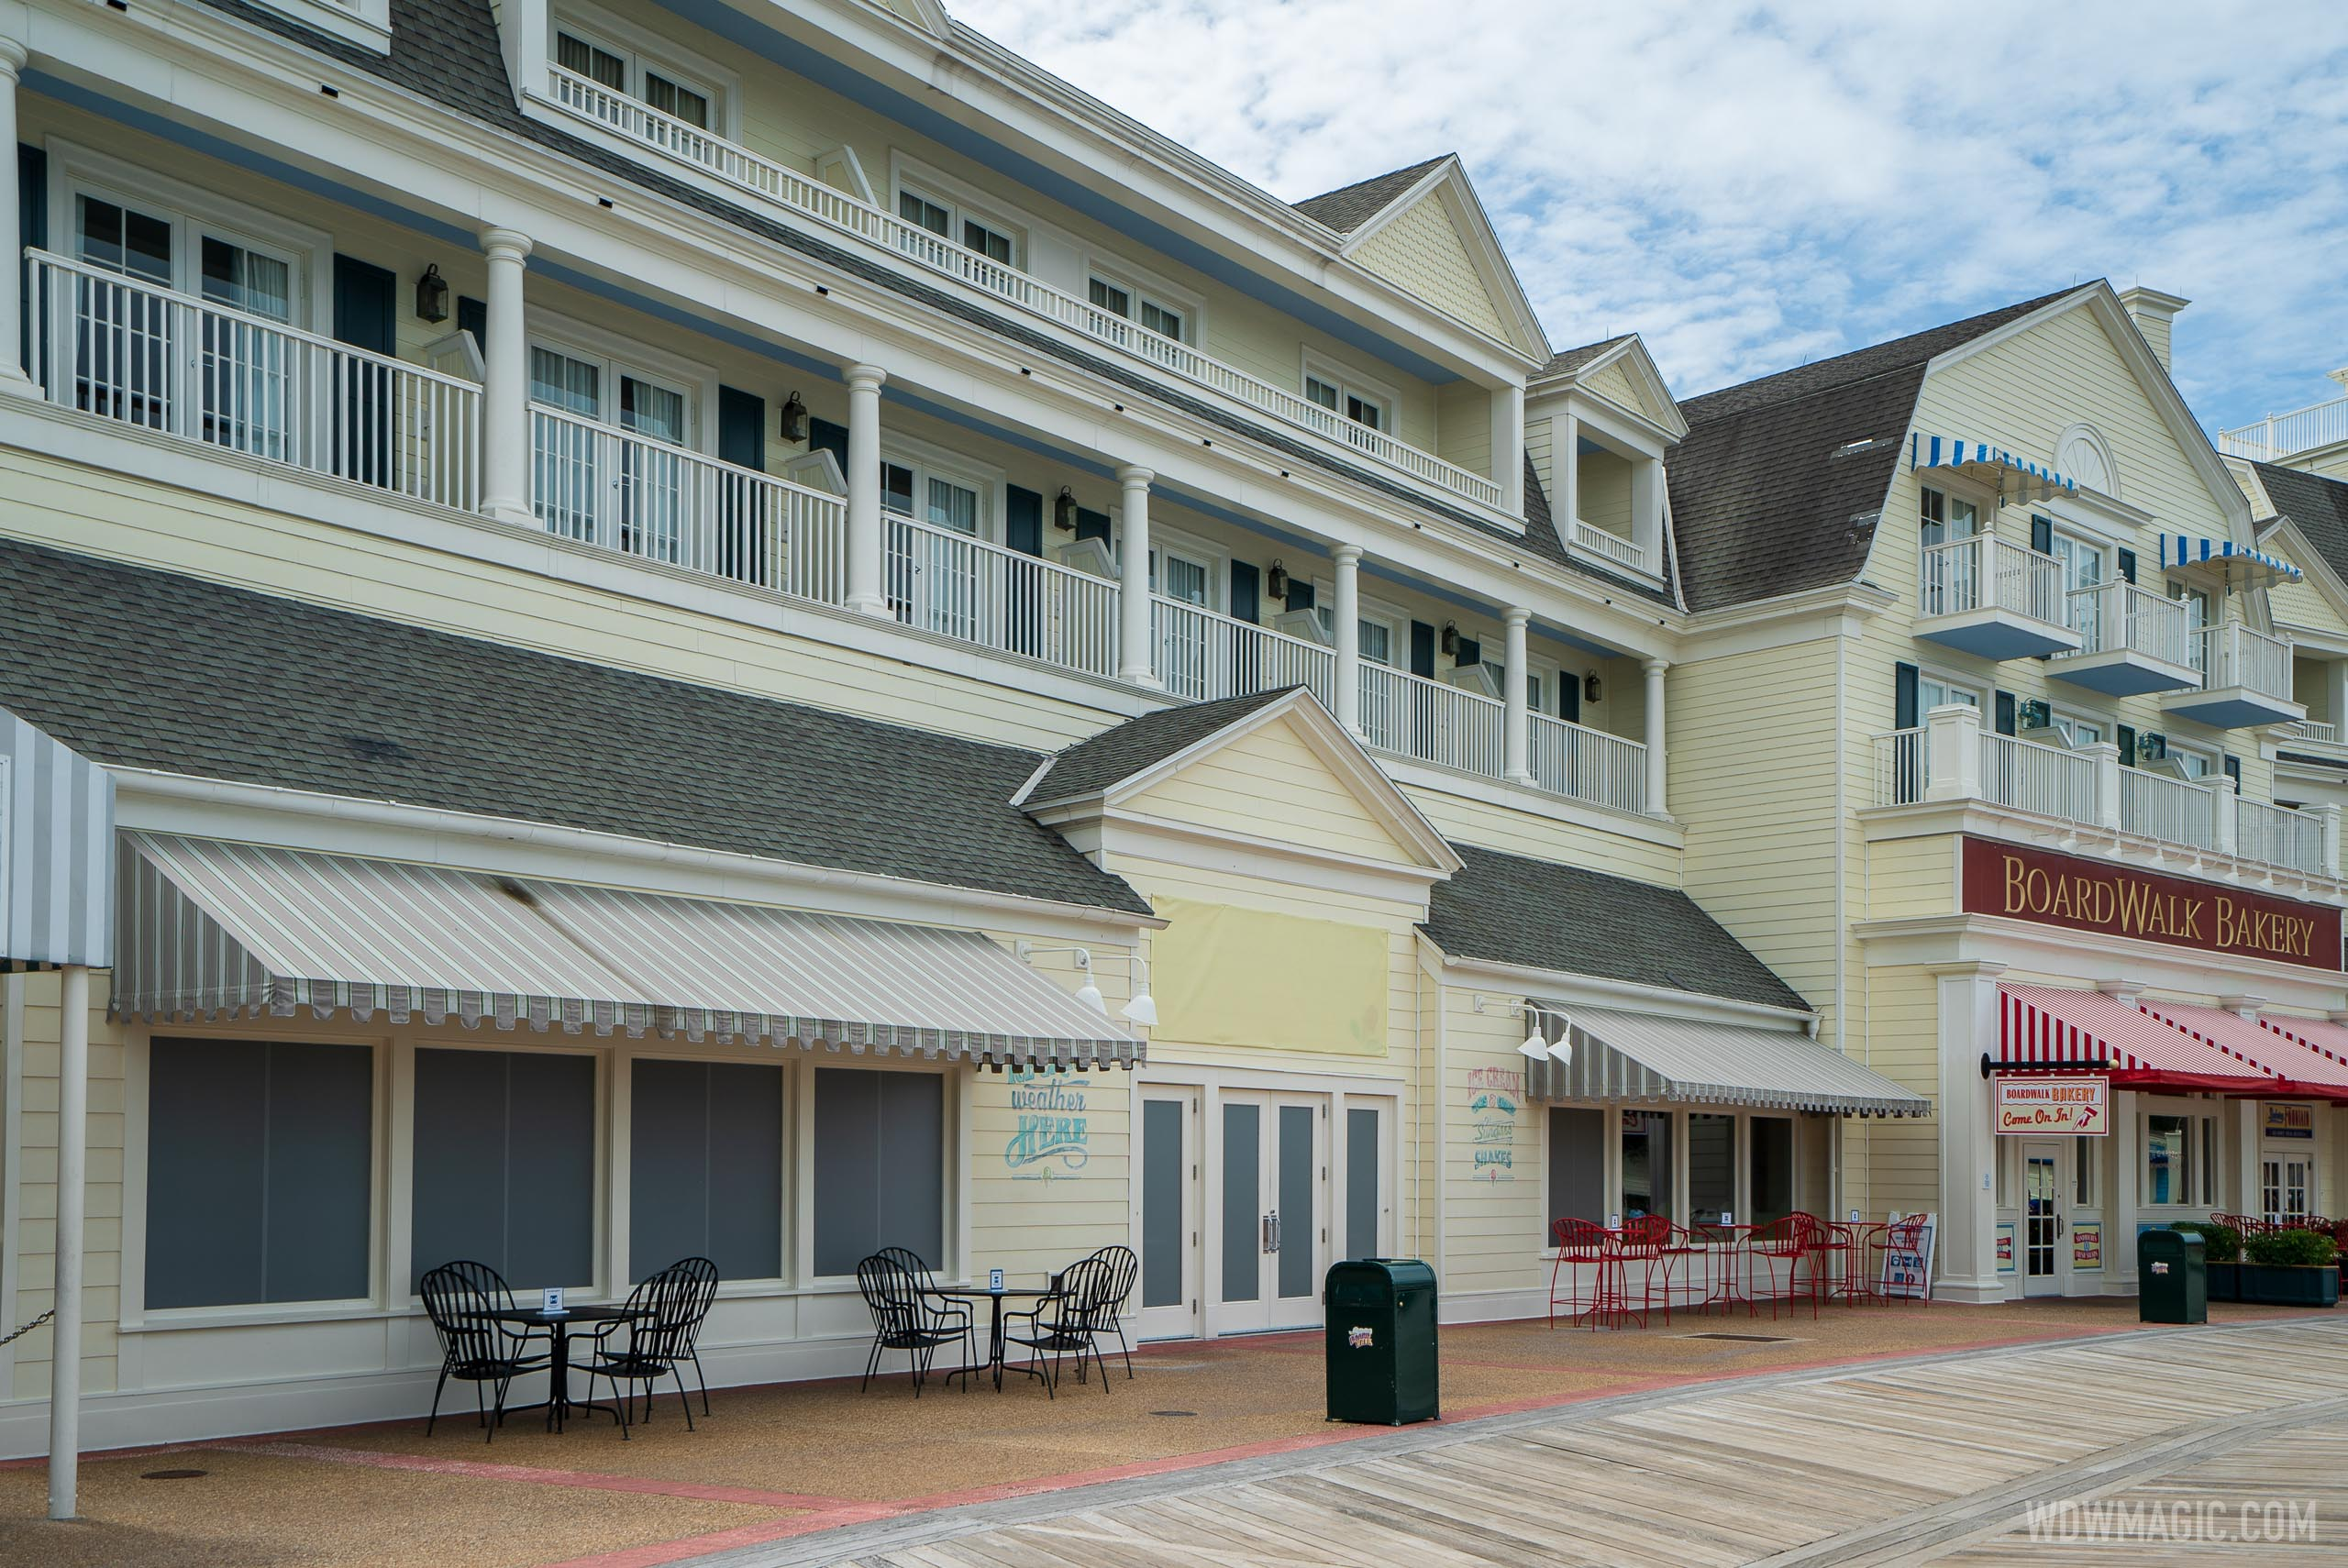 Ample Hills Creamery closed at Disney's Boardwalk